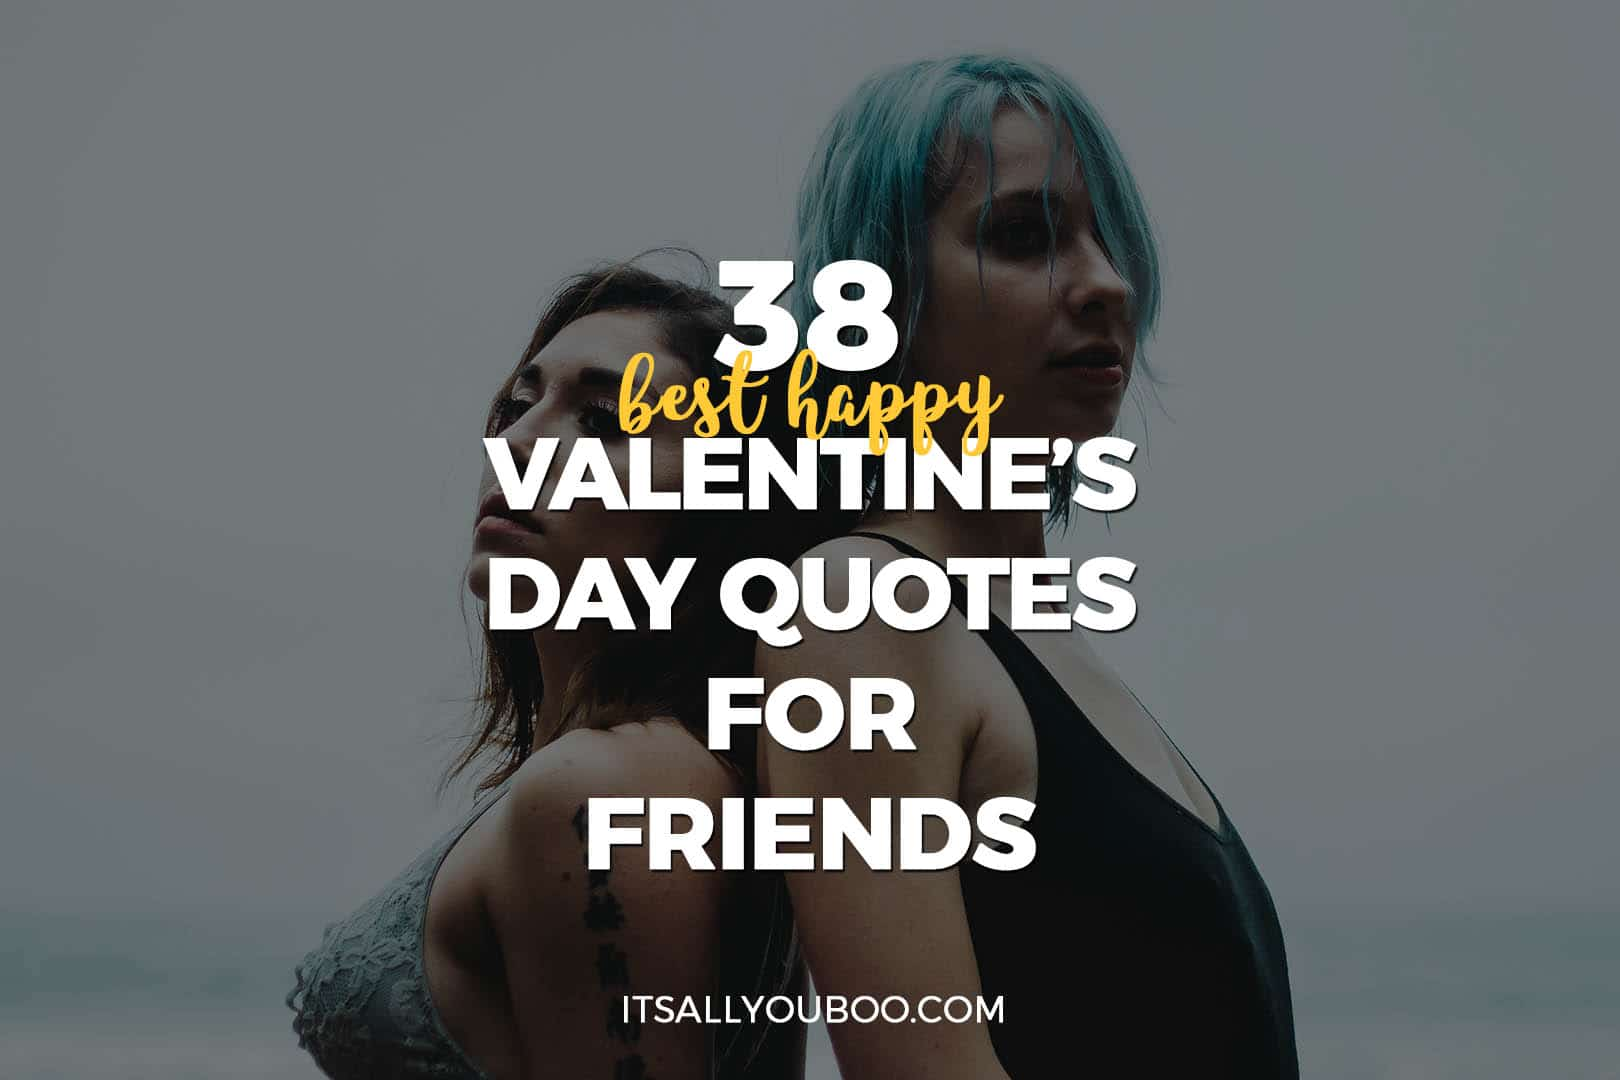 38 Best Happy Valentine's Day Quotes For Friends